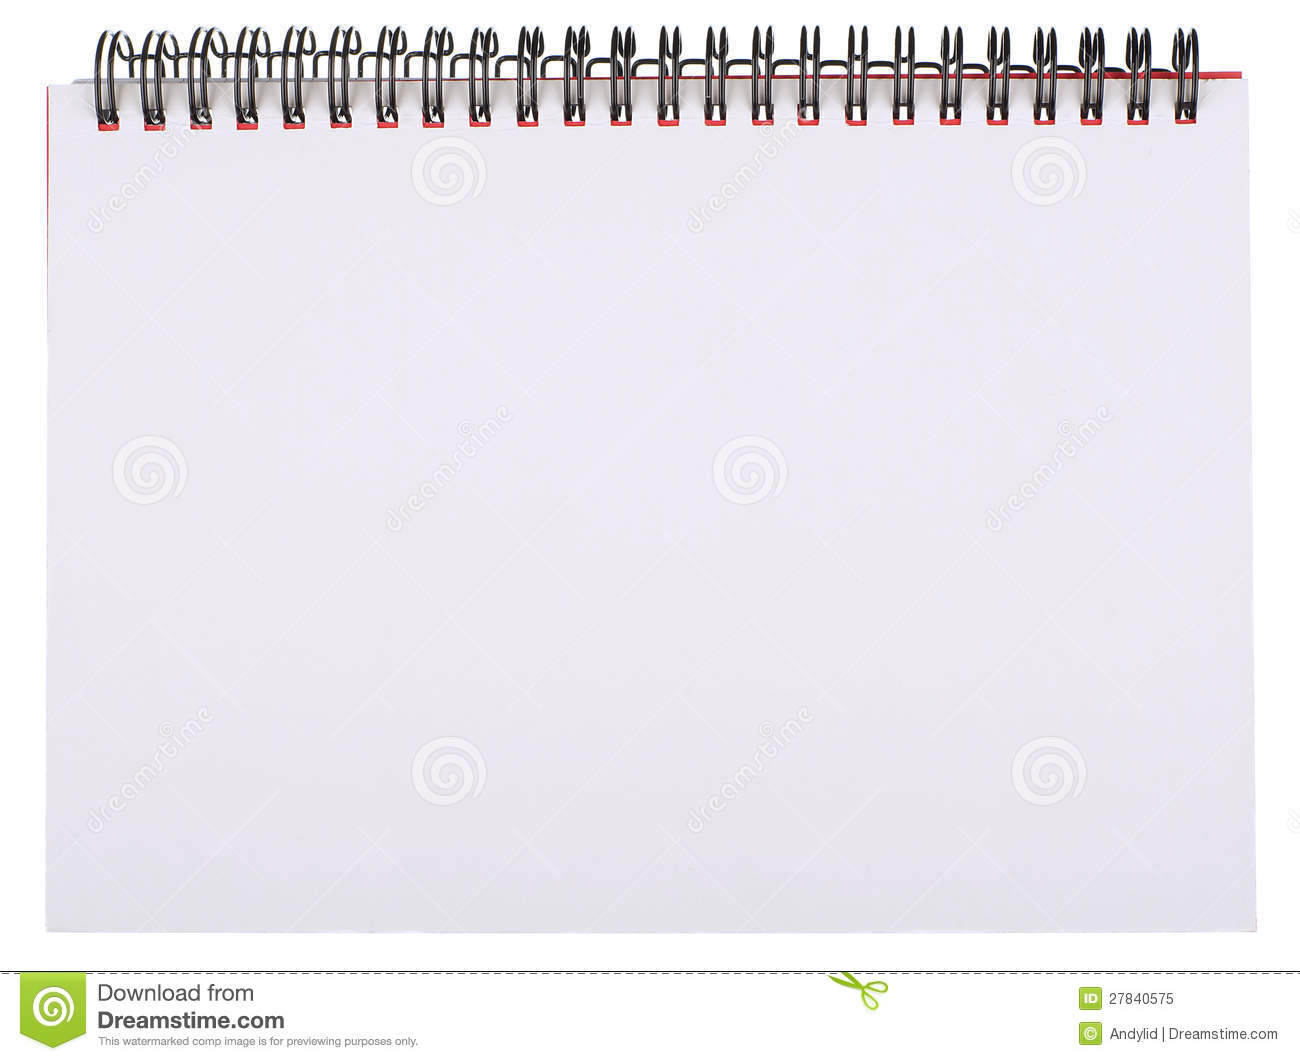 Blank White Page of Spiral Bound Notepad Isolated on White.